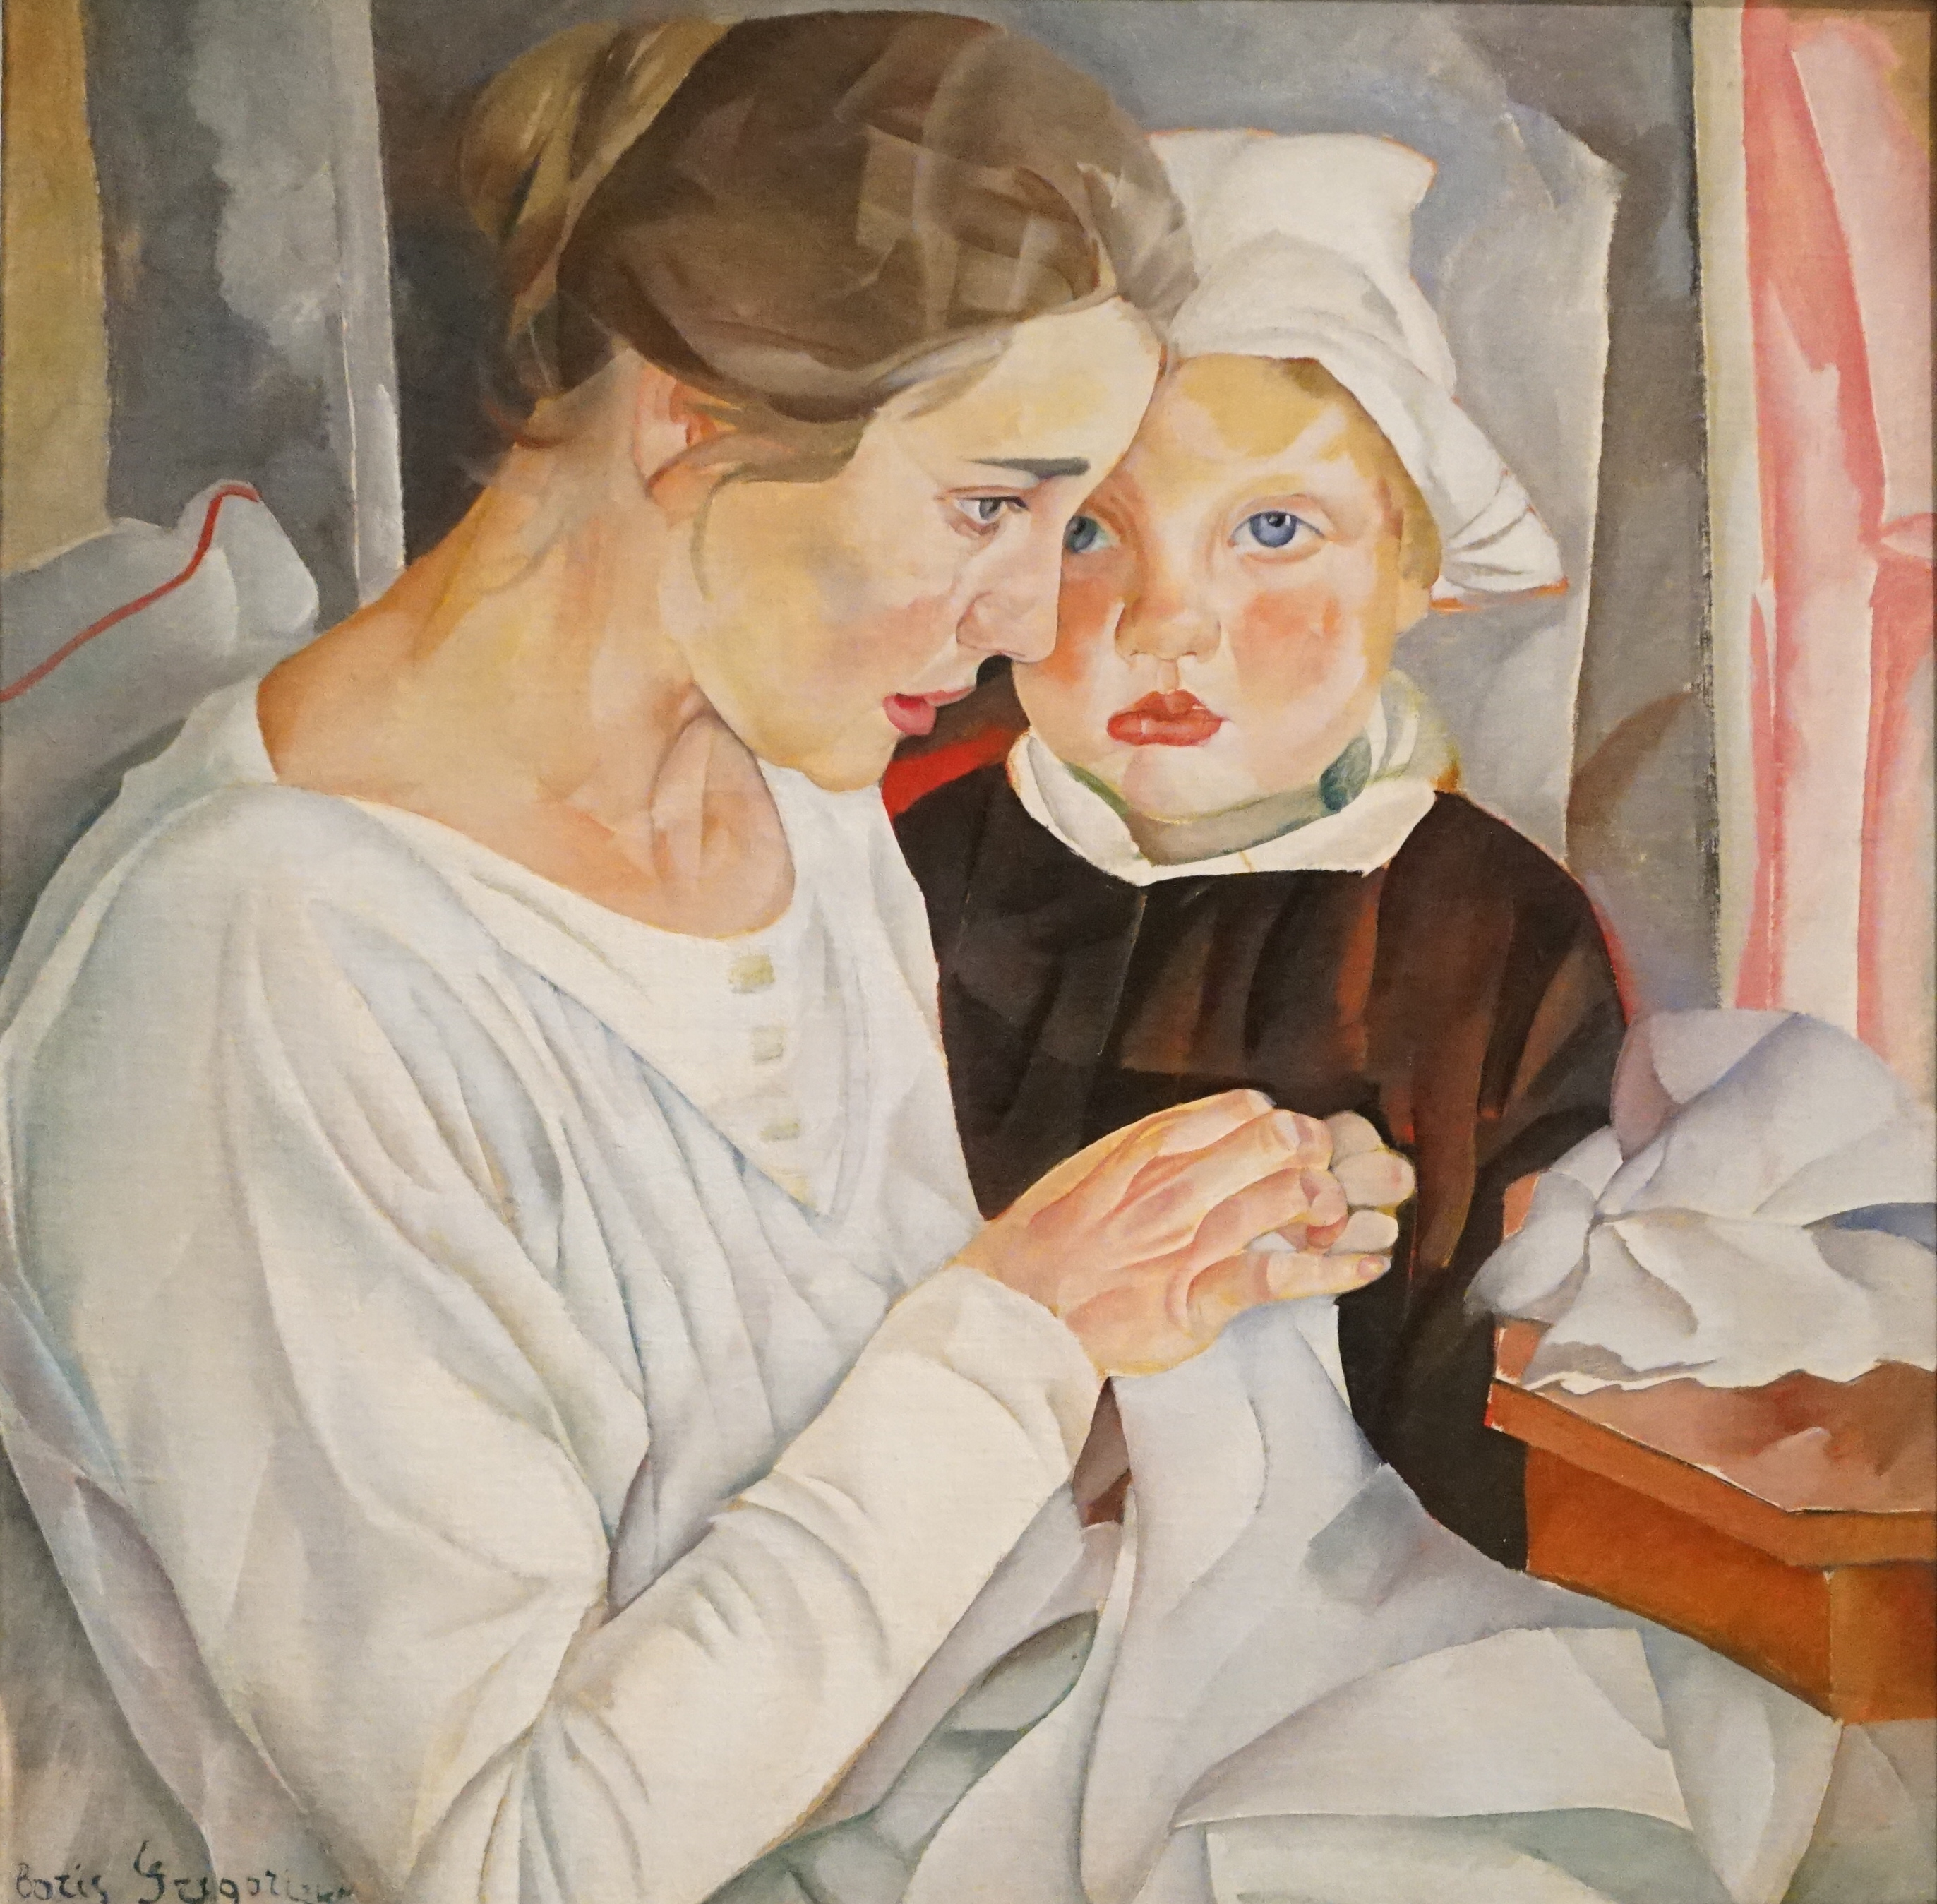 Mother and Child by Boris Grigoriev